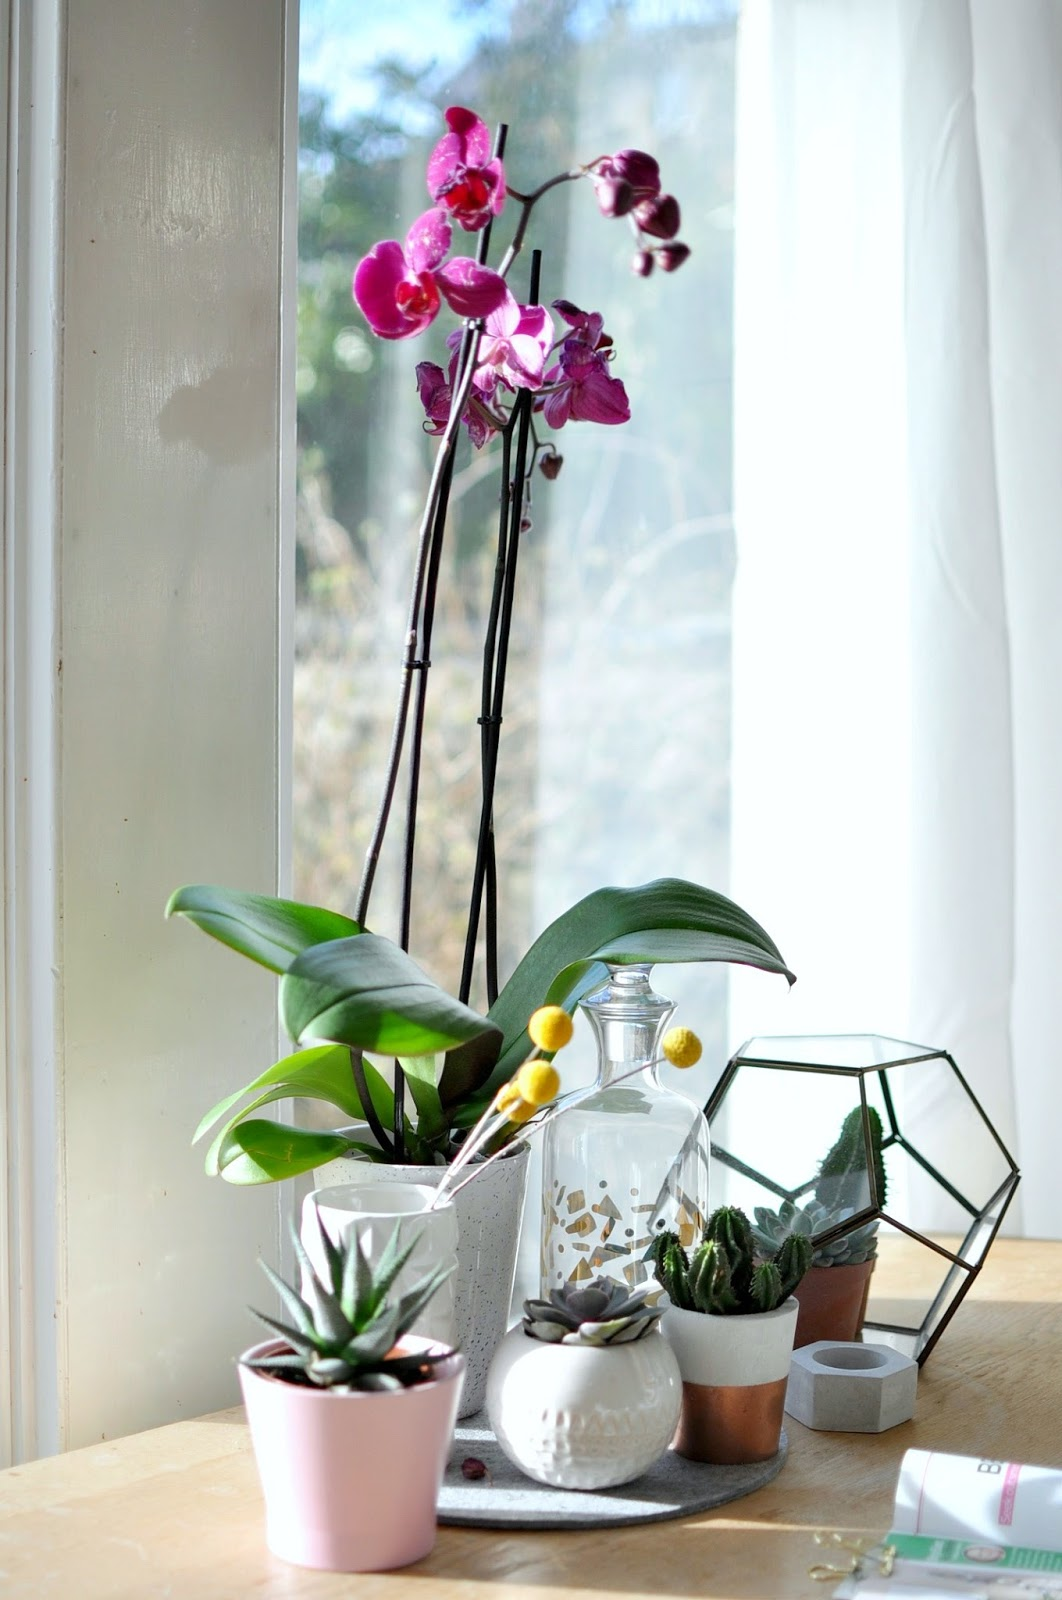 orchid care, orchid plant care, phalaenopsis, how to care for orchids, how to grow orchids, looking after orchids, plant gang, interior styling, spring, blooms, flowers